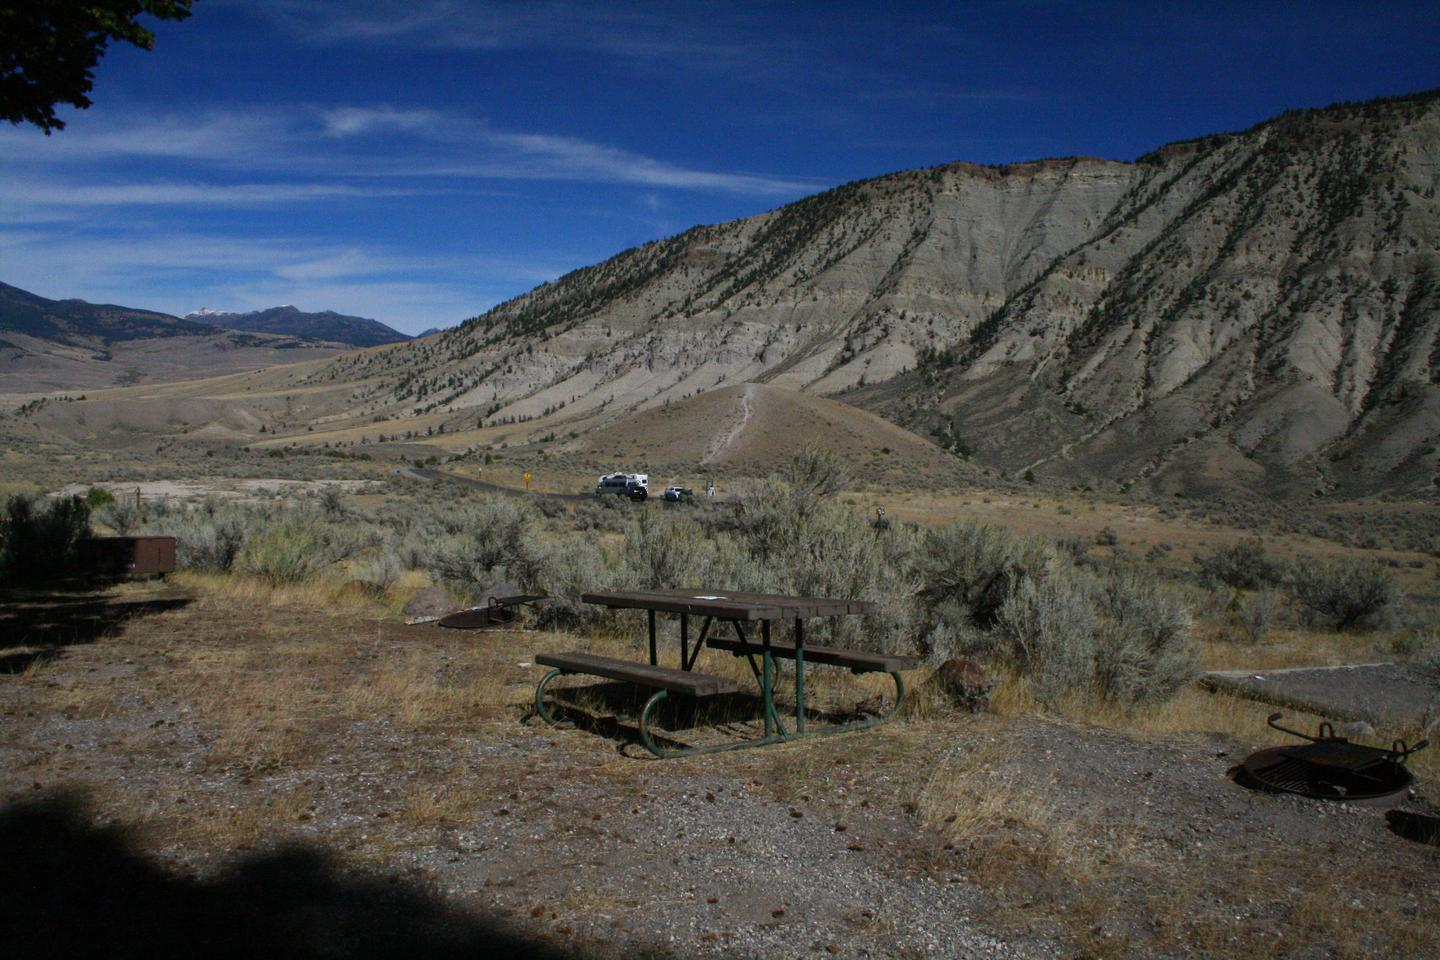 Mammoth Hot Springs Campground Site 28.Mammoth Campsite #28 - Motorcycle site only, no vehicle parking